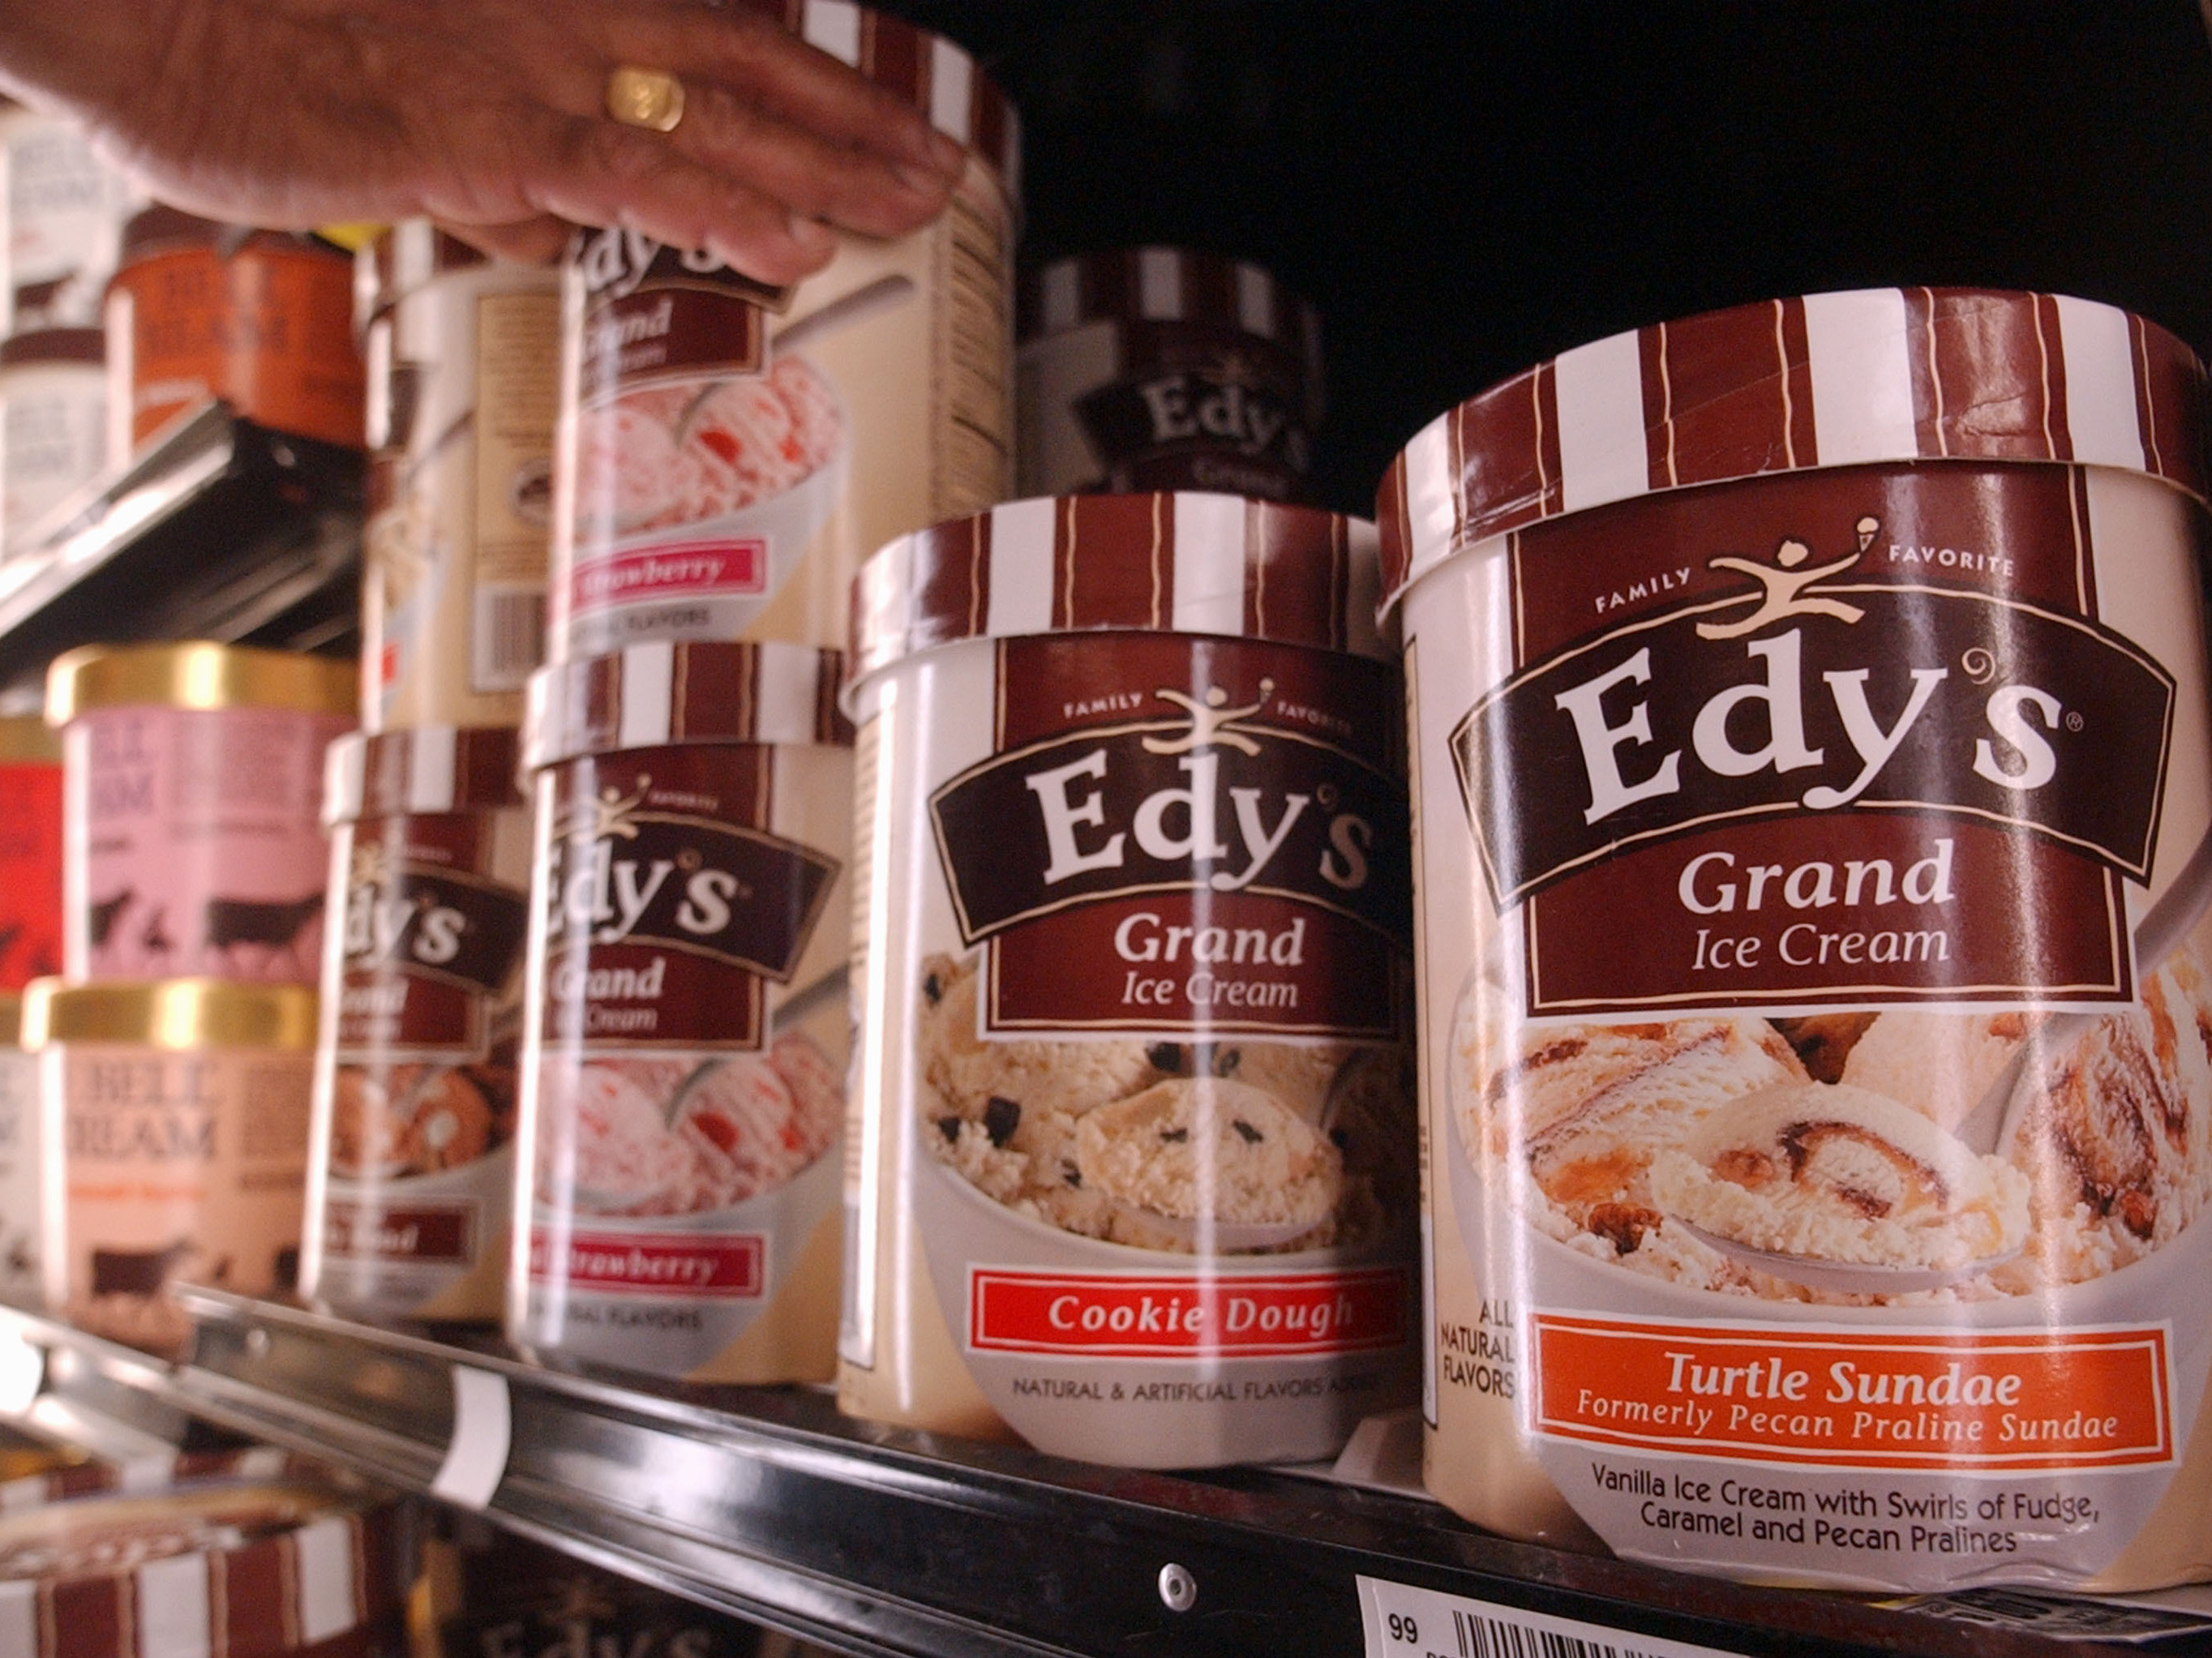 To Make A More Healthful Version Of Edys Grand Ice Cream Nestle Developed Technology That Could Cut Half The Fat And Two Thirds Calories From